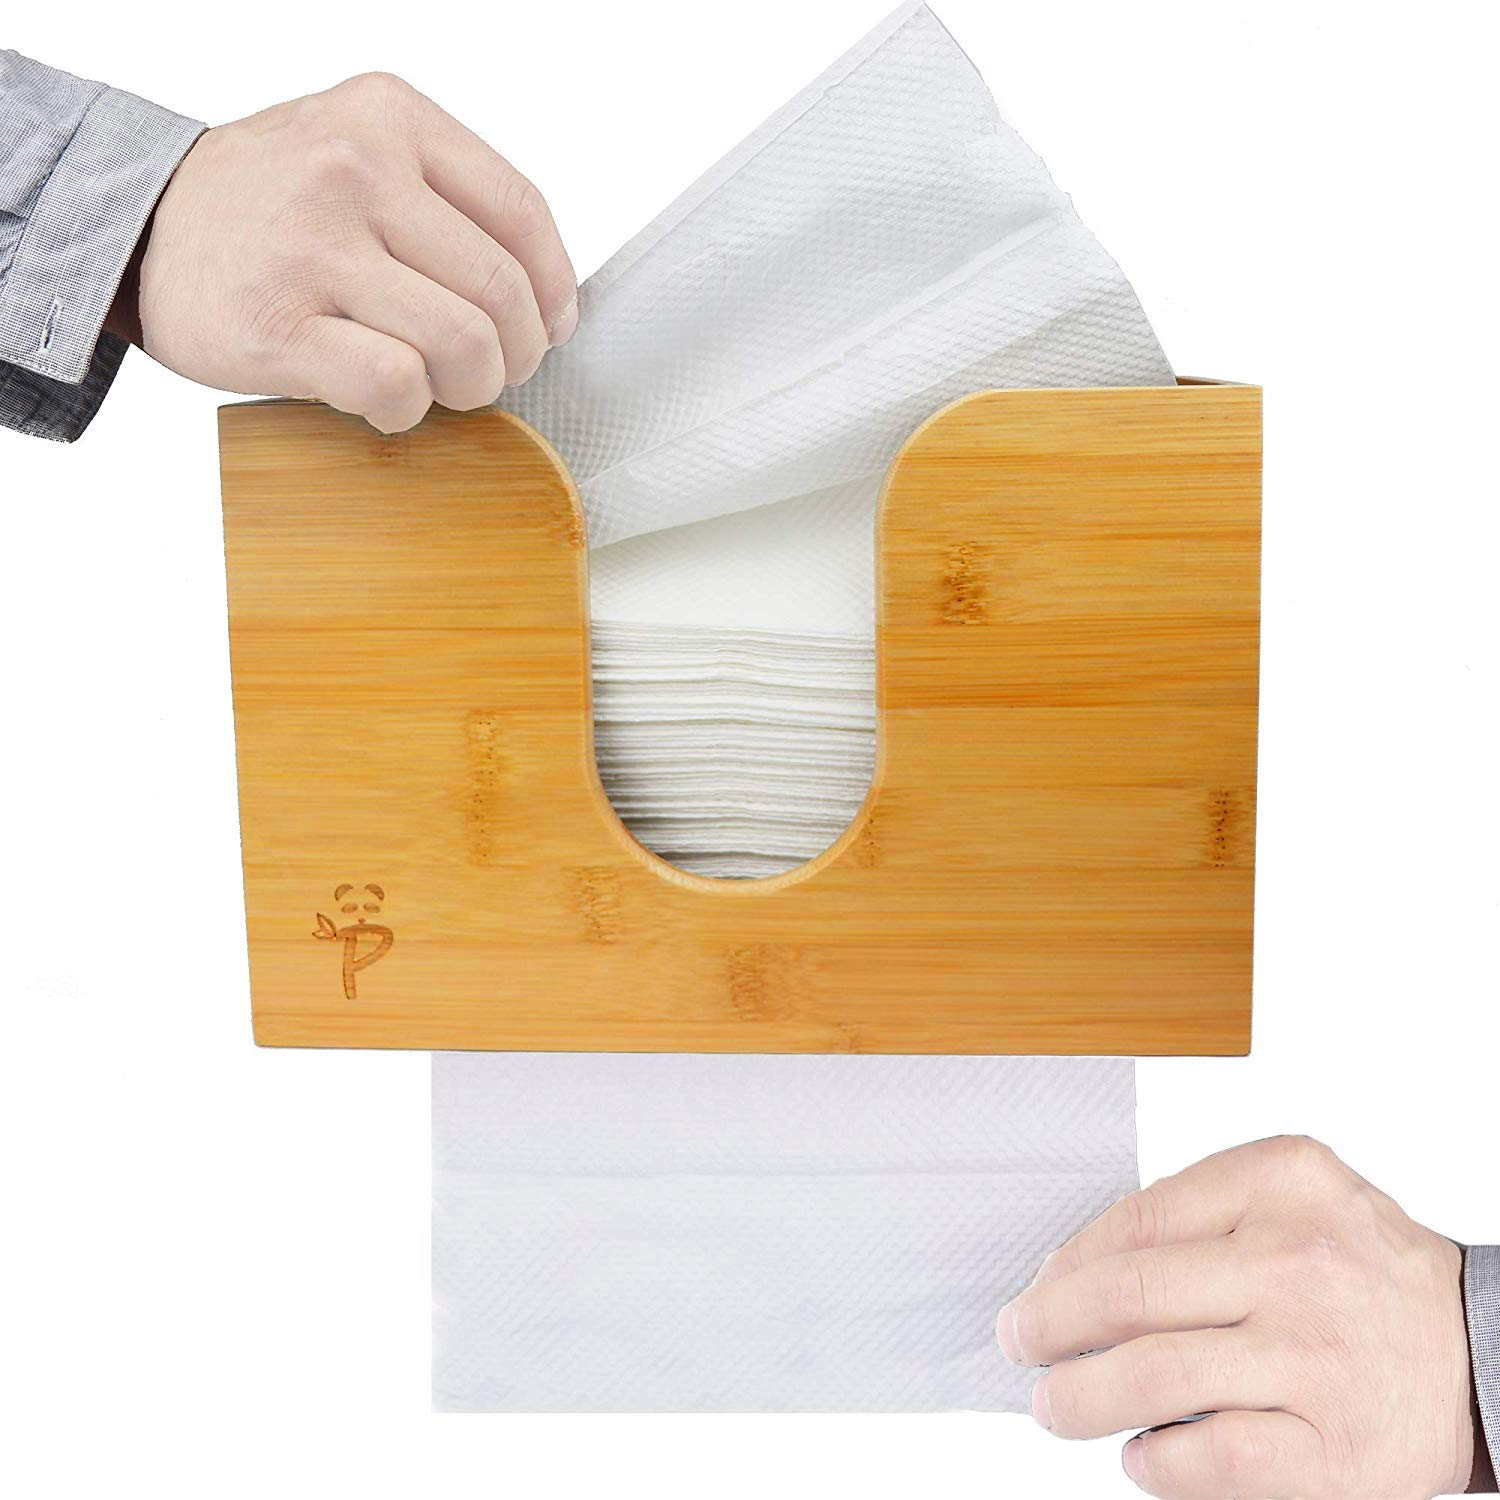 Triple fold Hand Towel Holder Dual Dispensing Smooth Bottom Dispensing and Beeswax Coated Commercial Z fold Bamboo Paper Towel Dispenser for Kitchen /& Bathroom Wall Mount//Counter-top Multi fold